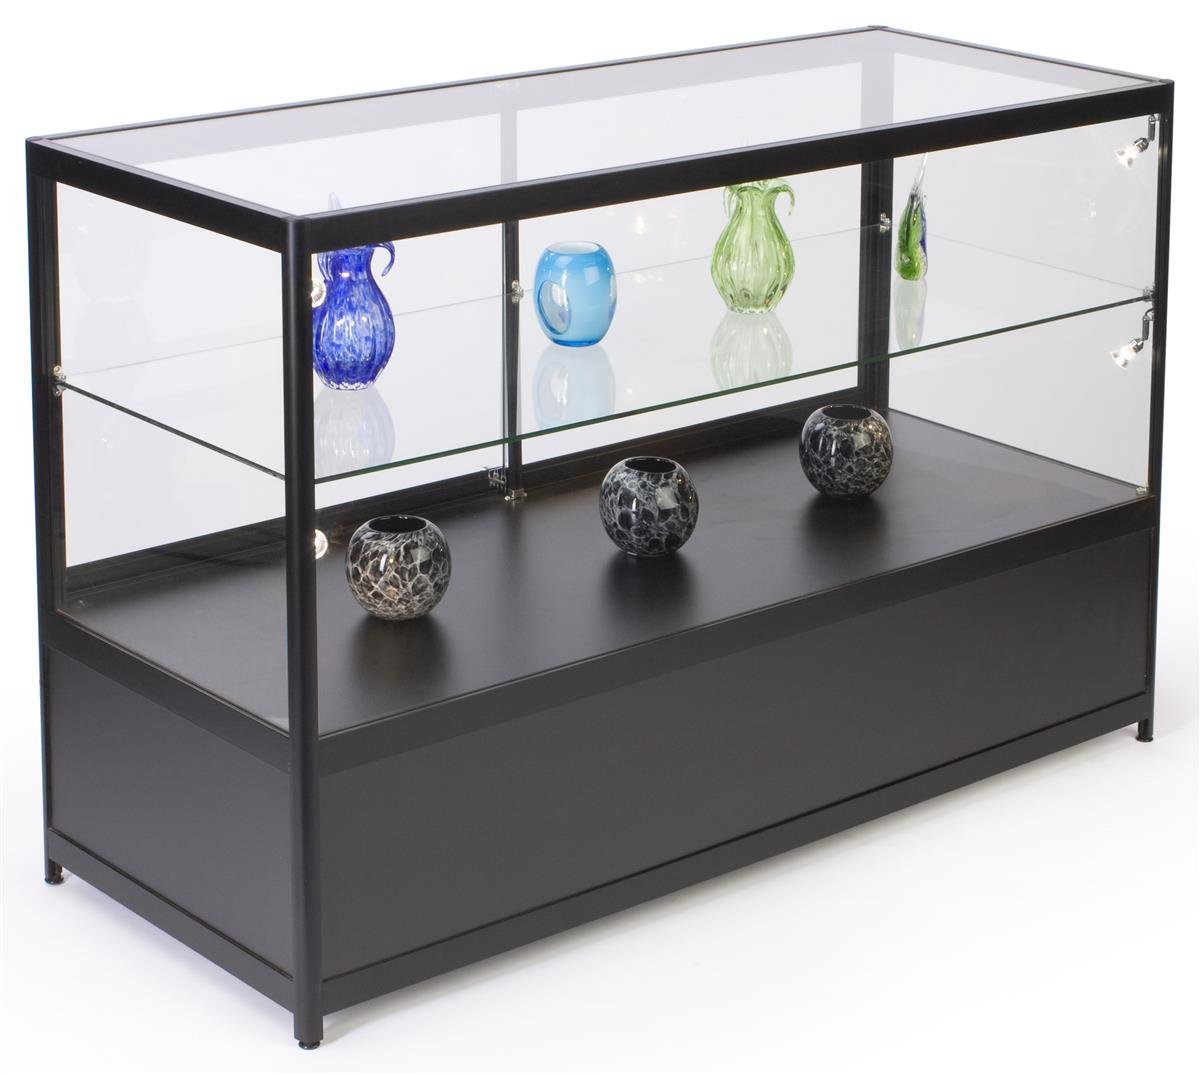 Displays2go 60'' Glass Showcase, Hidden Storage, LED Lights, Lockable Sliding Door - Black (IAPHV60LED)